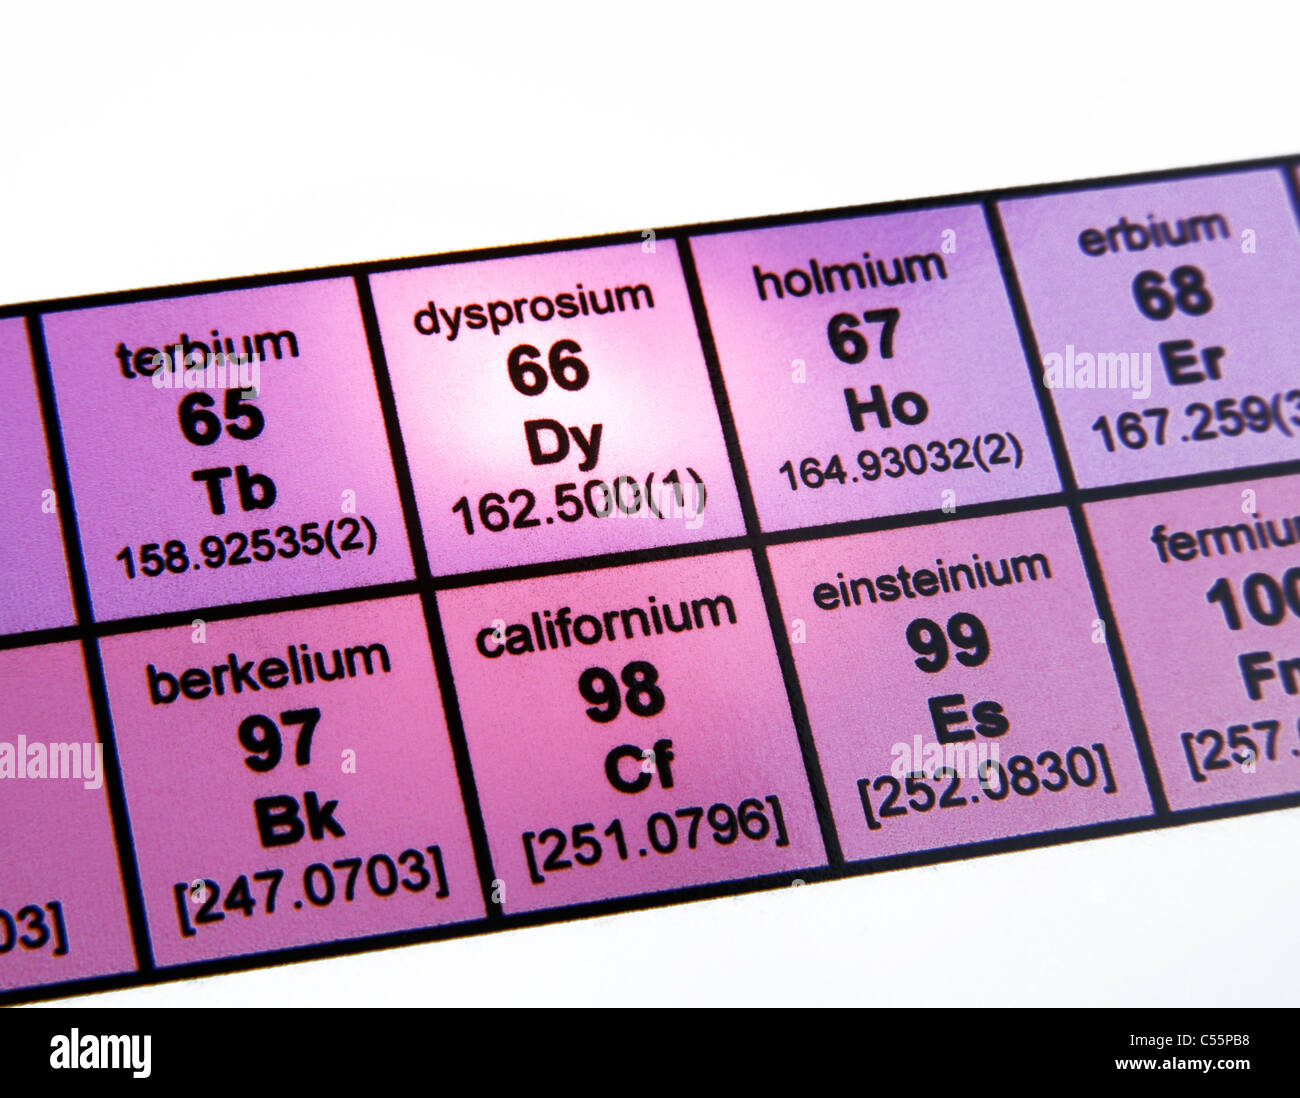 Dysprosium periodic table images periodic table images the periodic table of elements rare earth elements focus on stock photo the periodic table of gamestrikefo Image collections